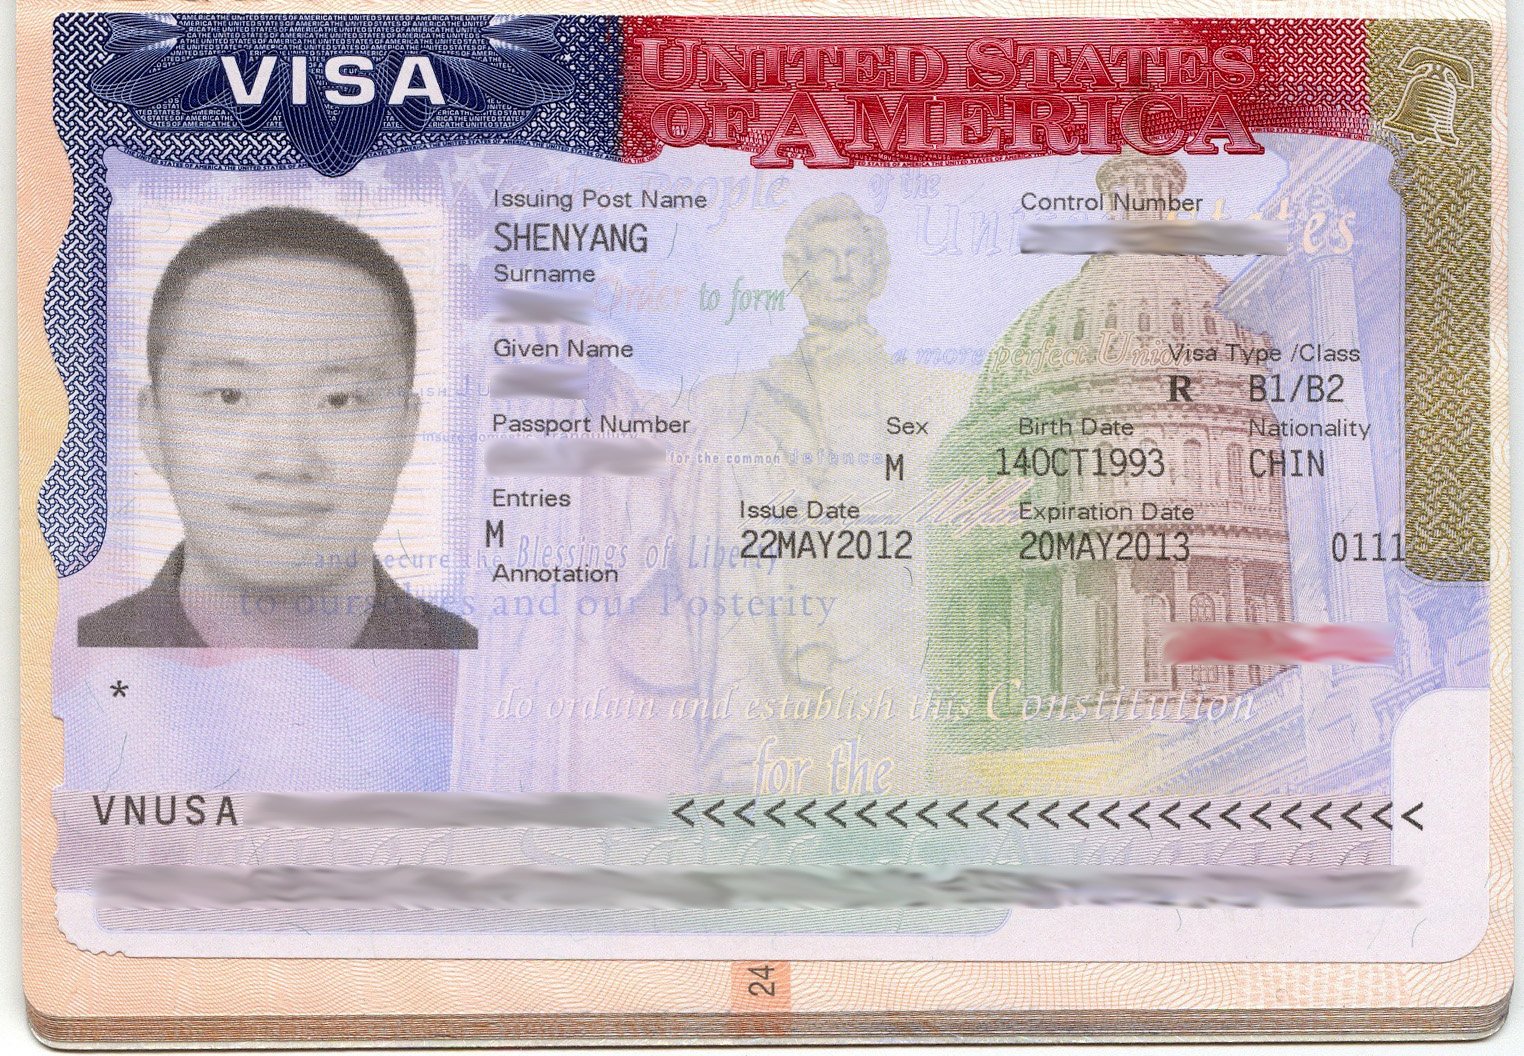 F Category Visa Three Types of Visa Ca...